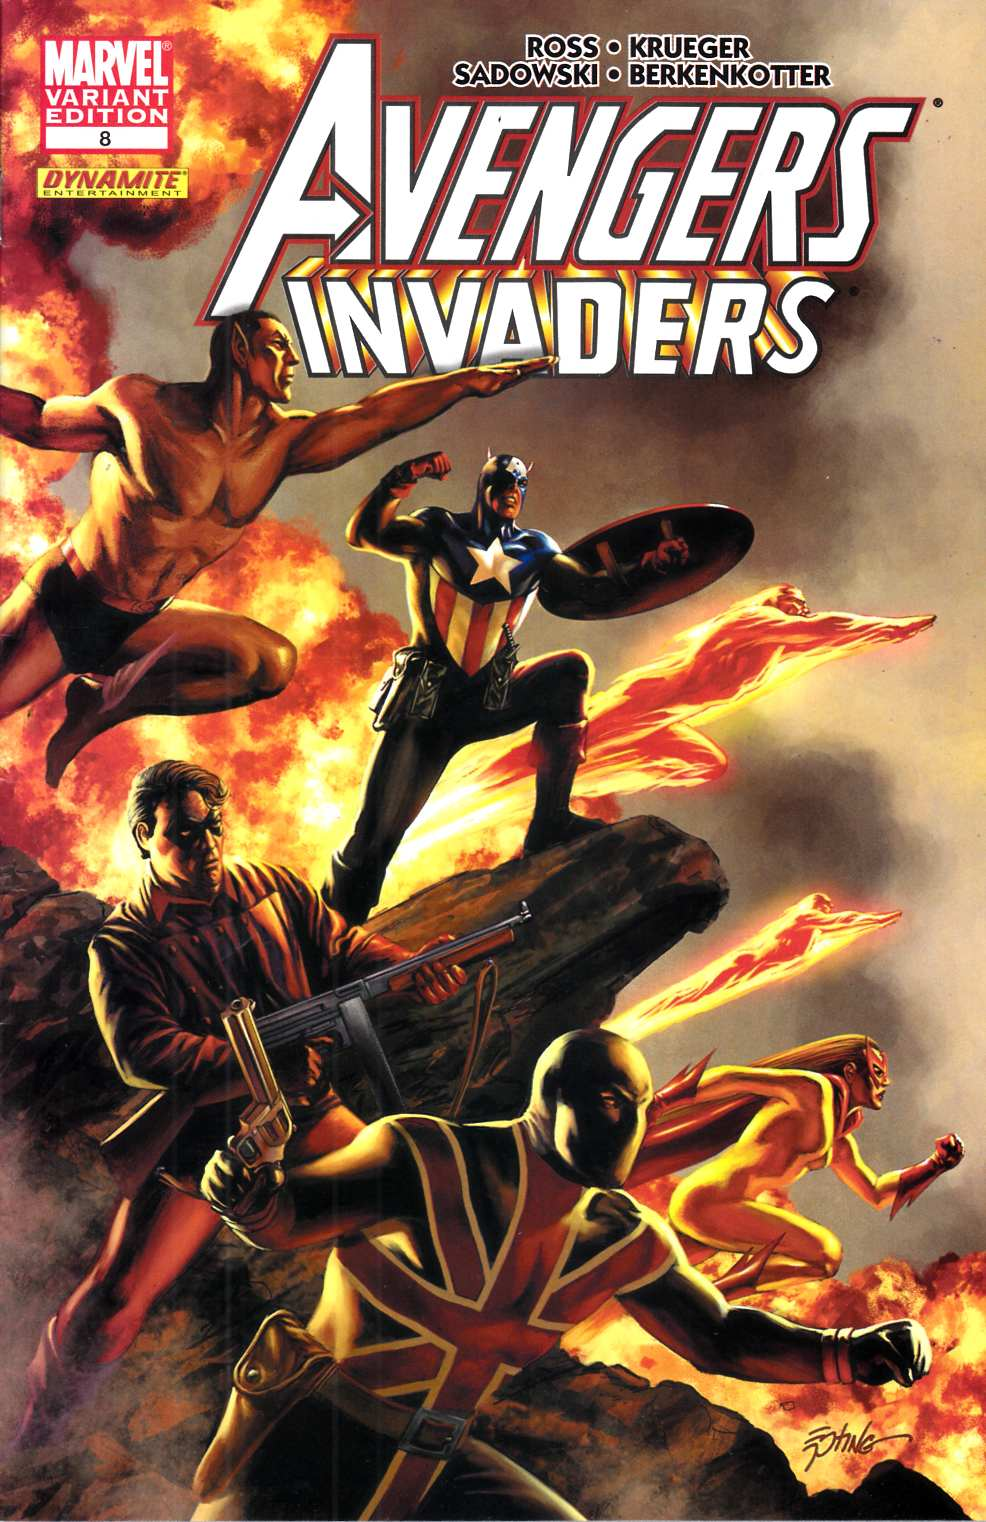 Avengers Invaders #8 Epting Variant Cover Very Fine (8.0) [Marvel Comic] THUMBNAIL